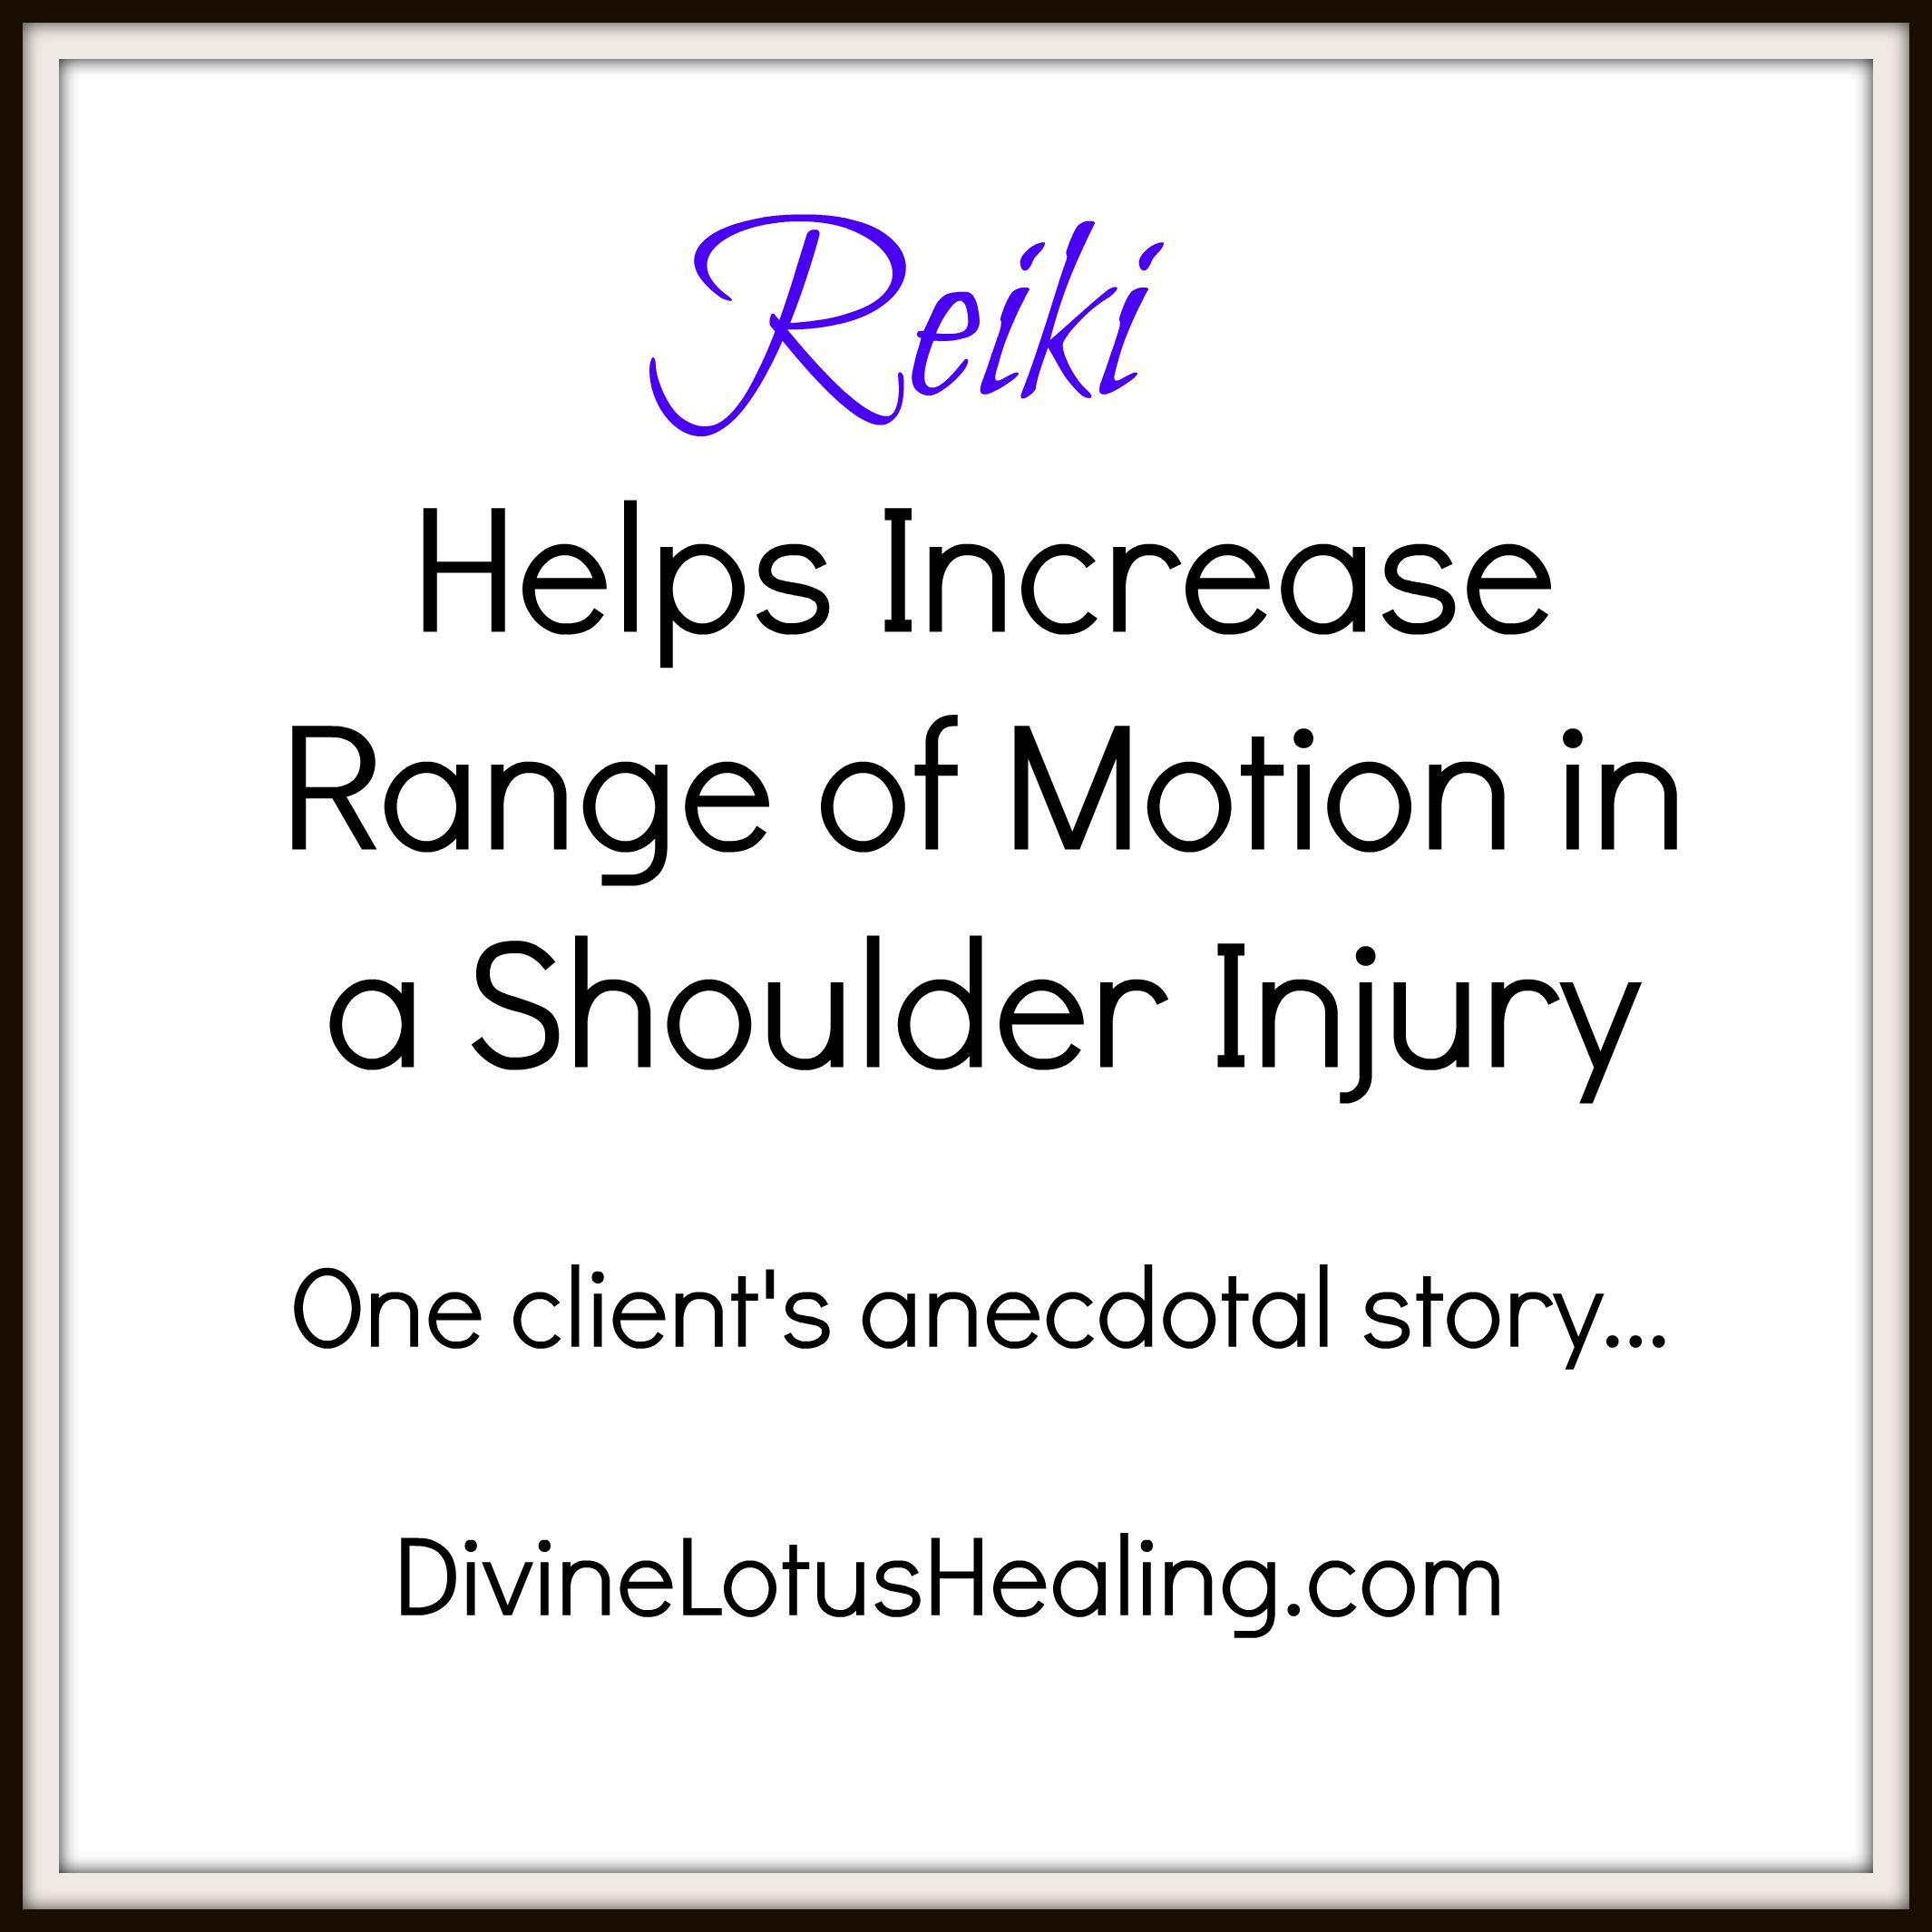 Reiki Helps Increase Range of Motion in a Shoulder Injury